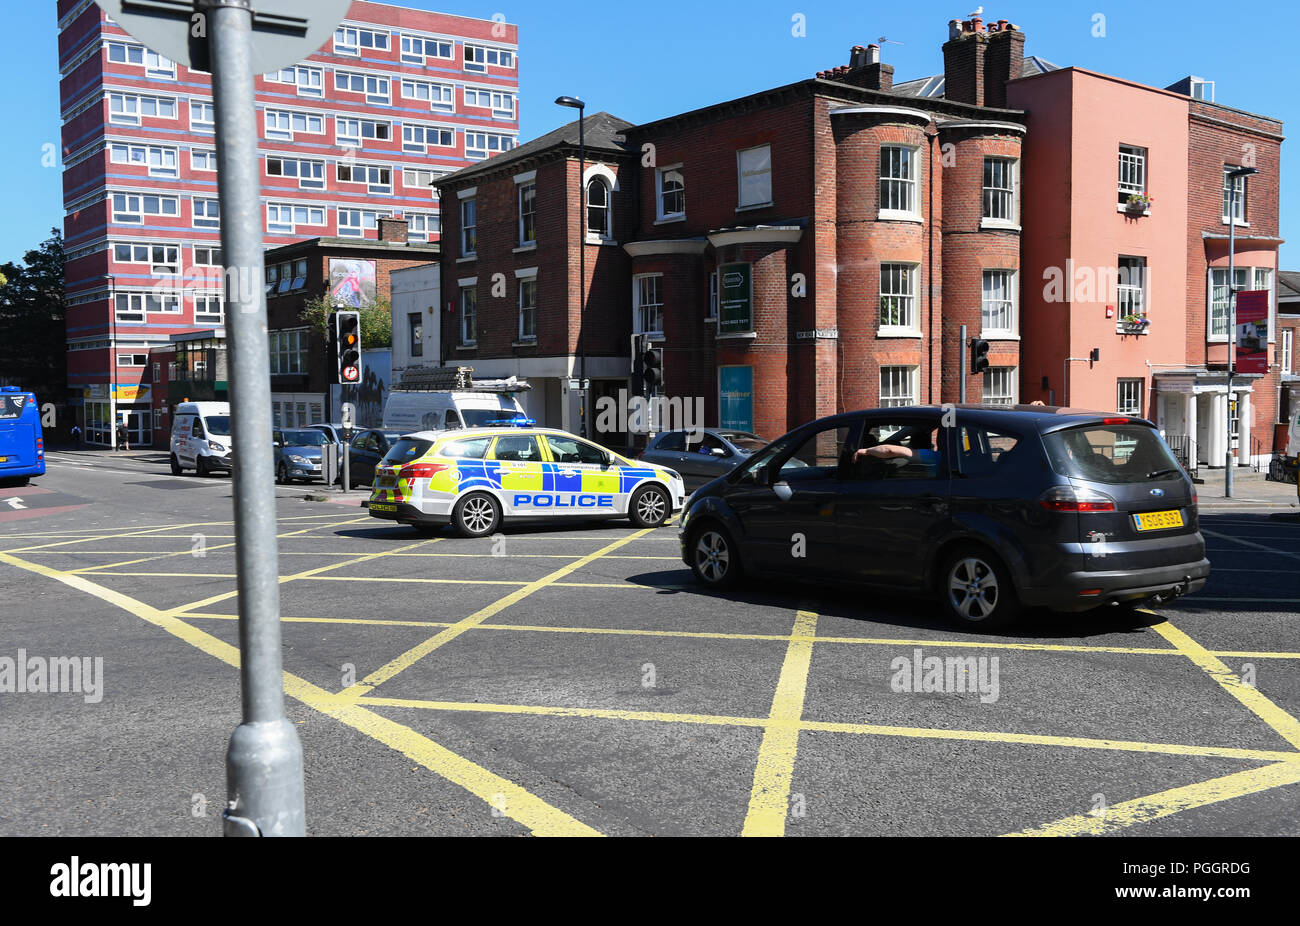 A Police vehicle enters a yellow junction box as it goes through a Red light traffic signal halting traffic on an emergency call. - Stock Image